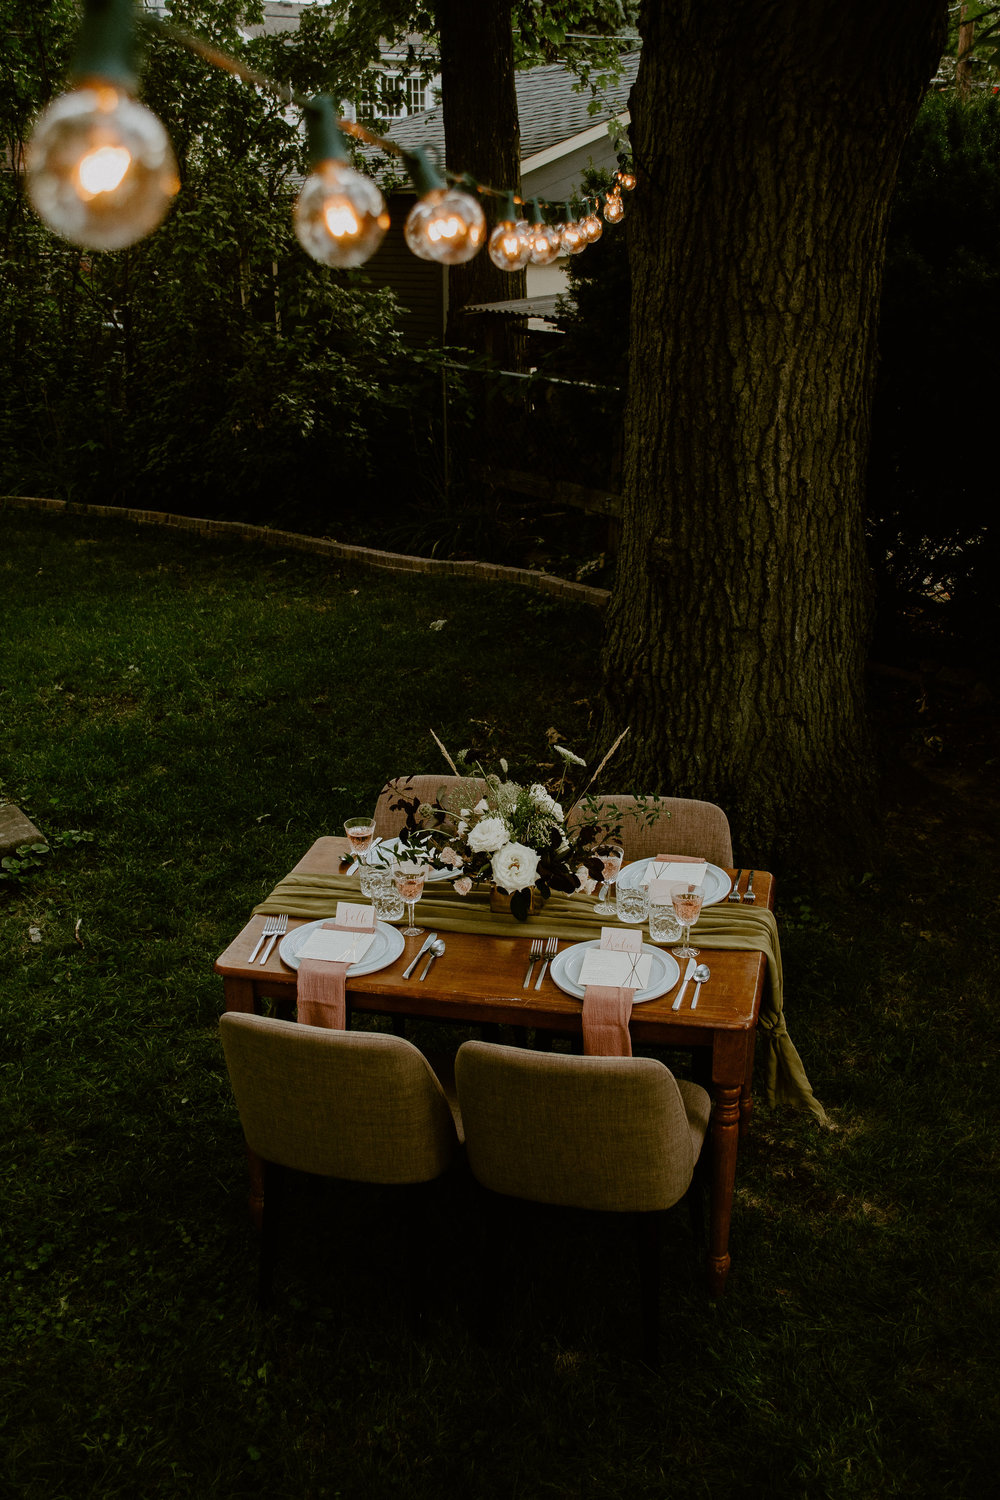 chartreuse-table-setup-with-hanging-lights.jpg